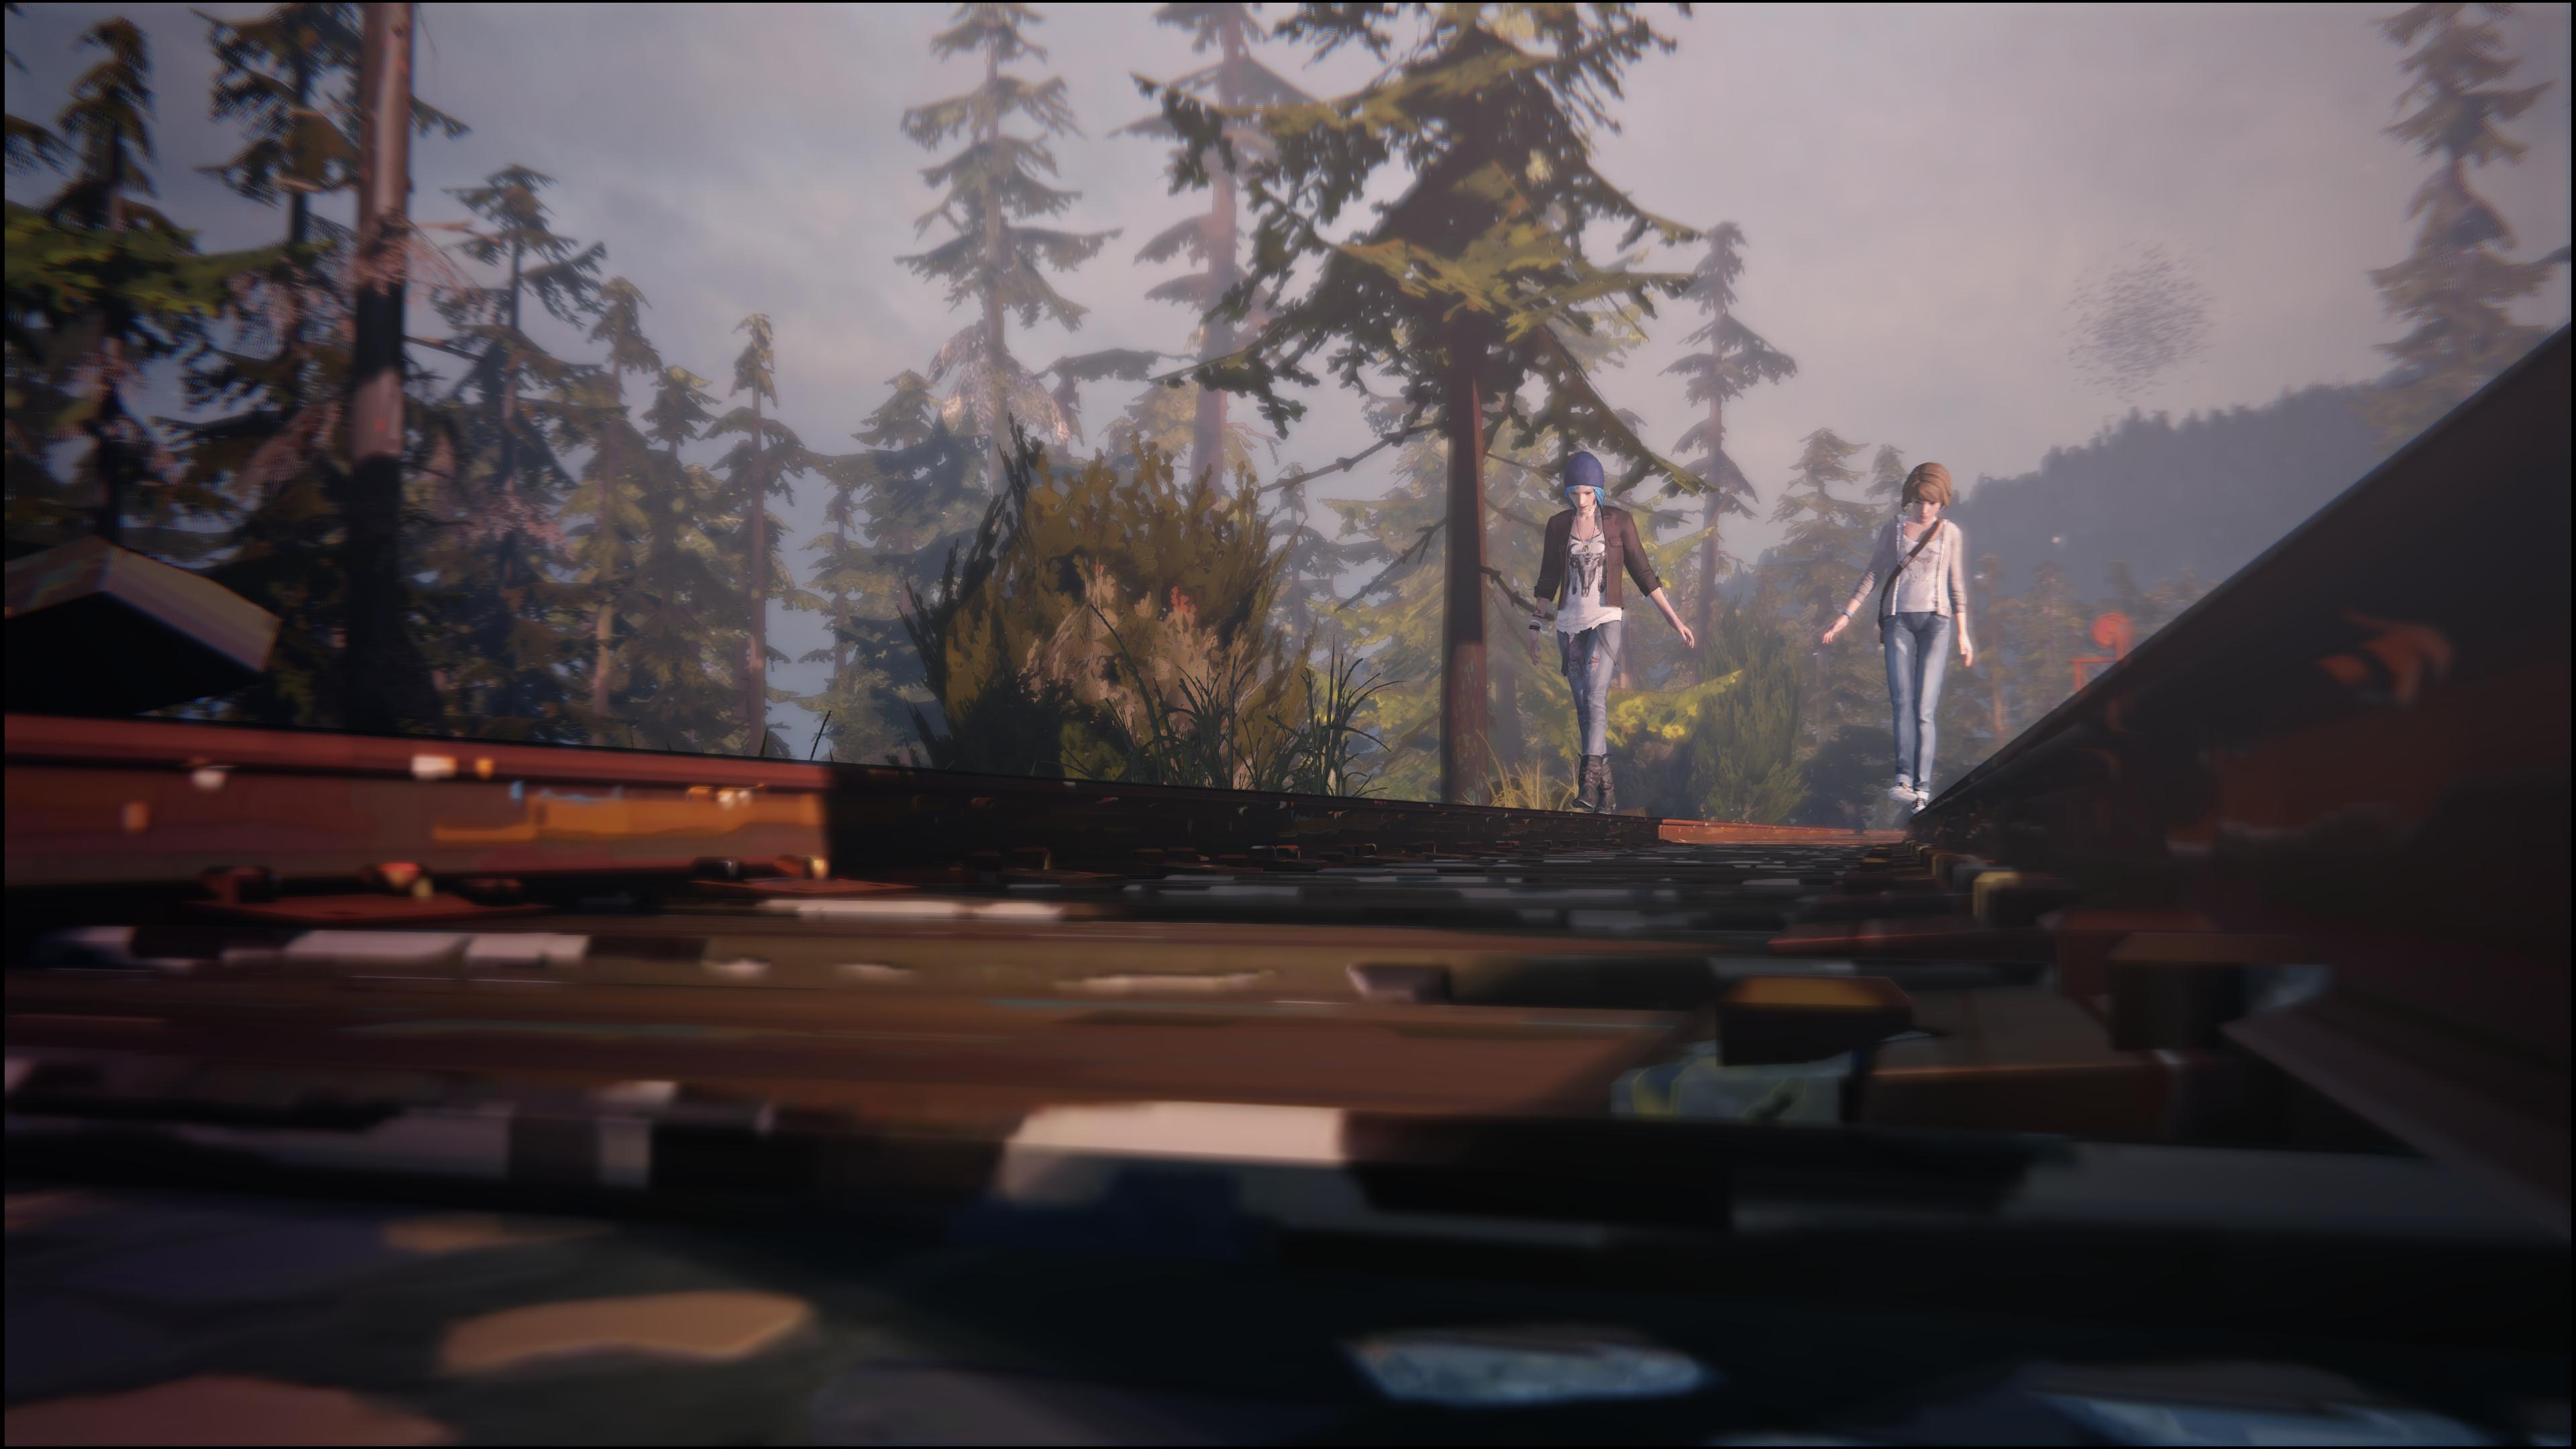 Life Is Strange 2 Wallpaper: Life Is Strange Wallpapers, Pictures, Images